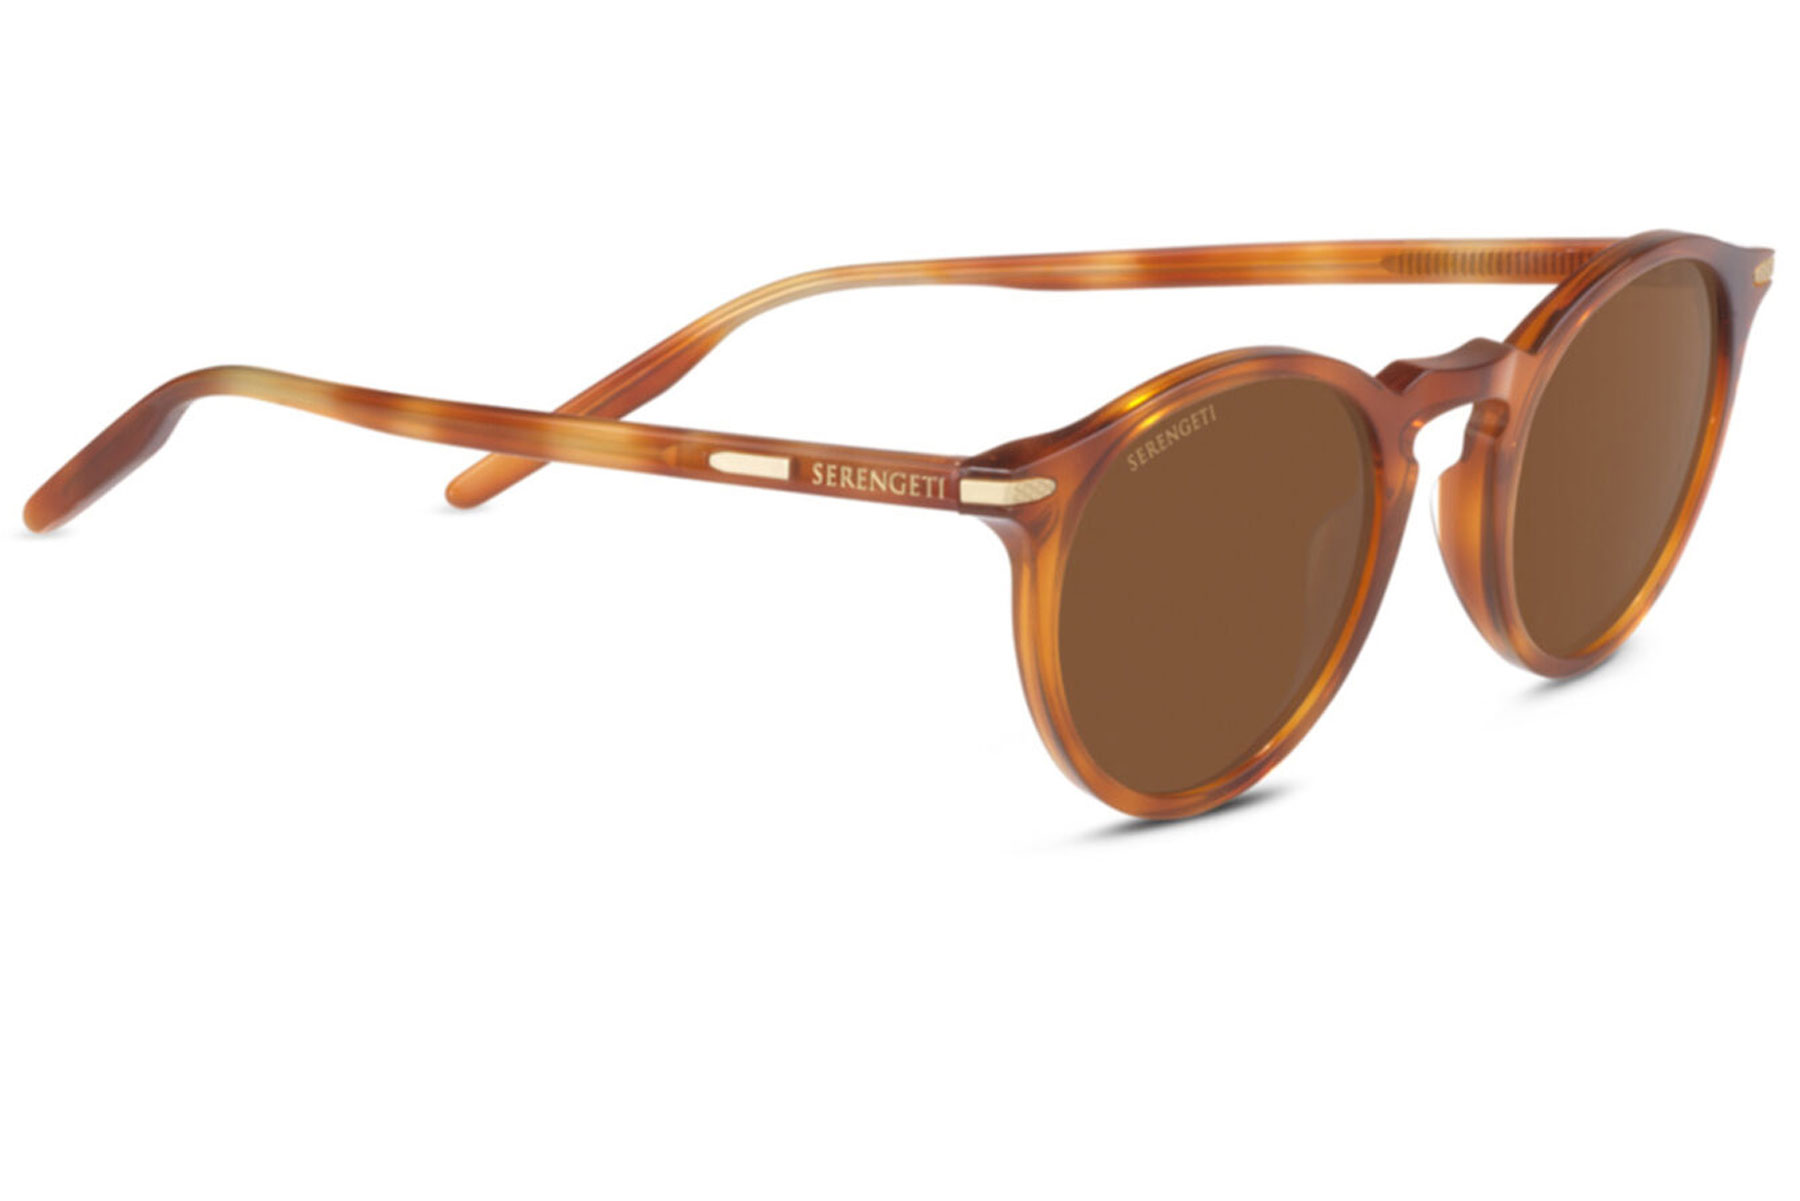 Tan round sunglasses